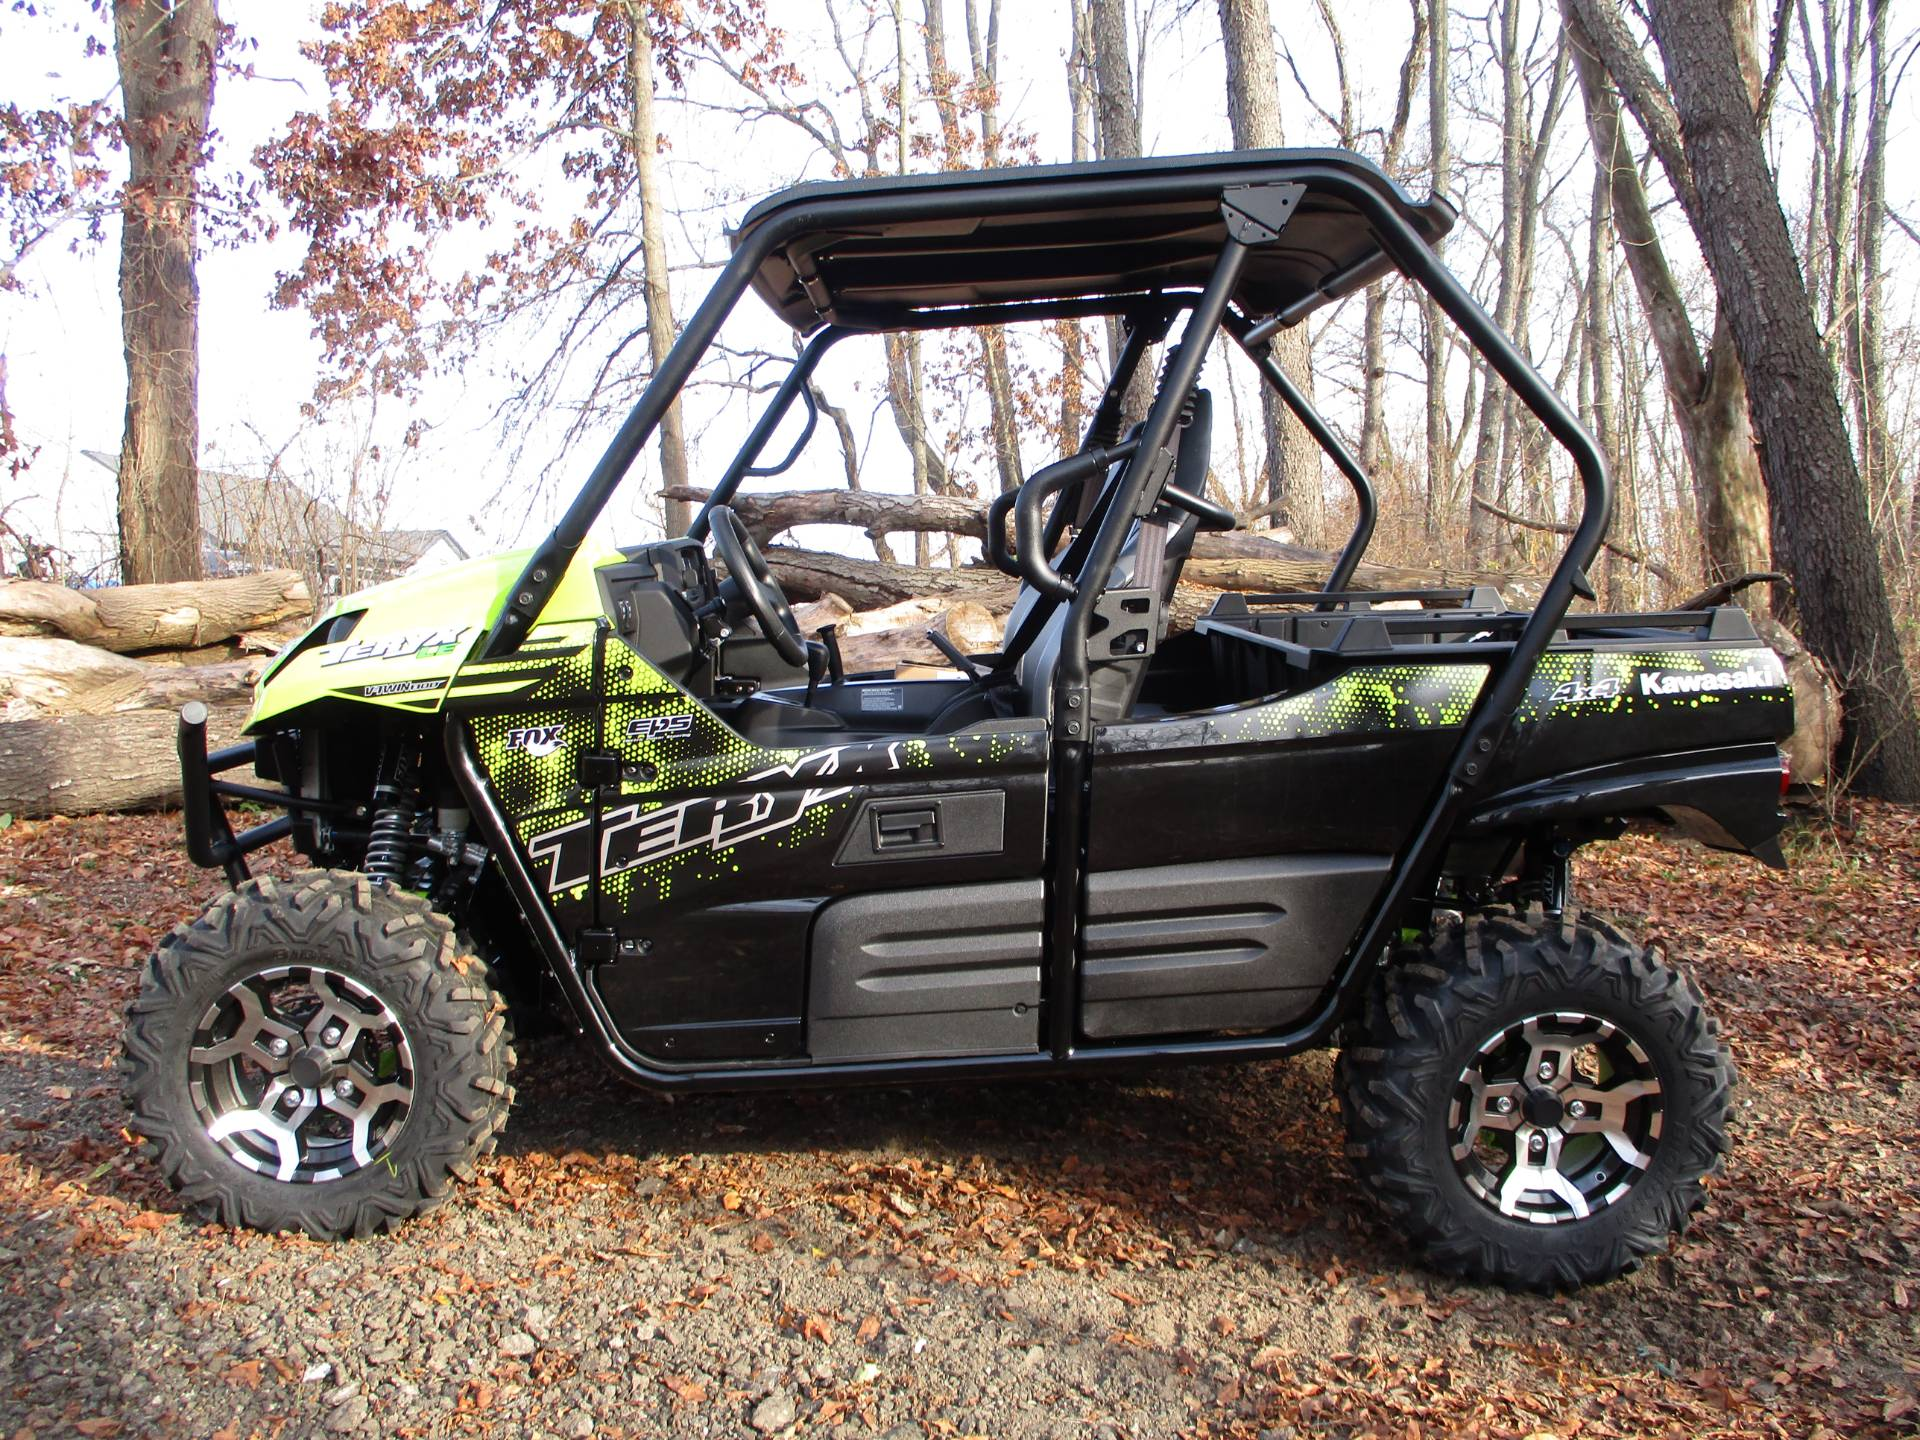 2021 Kawasaki Teryx LE in Howell, Michigan - Photo 1